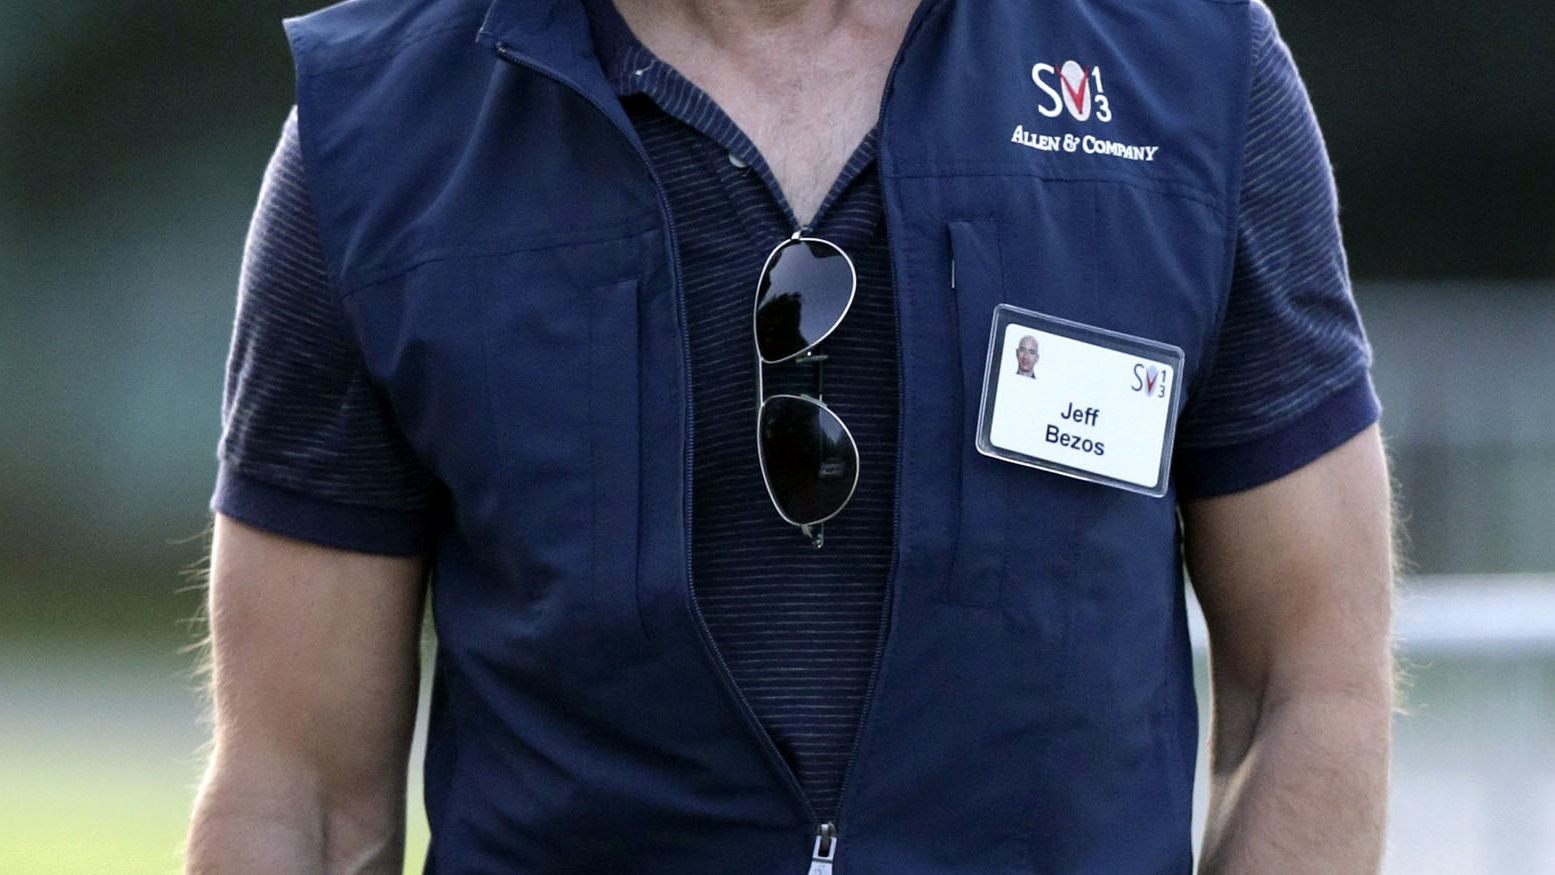 Jeffrey Bezos, founder and CEO of Amazon.com, Inc. walks to the morning session at the Allen & Company Sun Valley Conference in Sun Valley, Idaho, Wednesday, July 10, 2013. (AP Photo/Rick Bowmer)